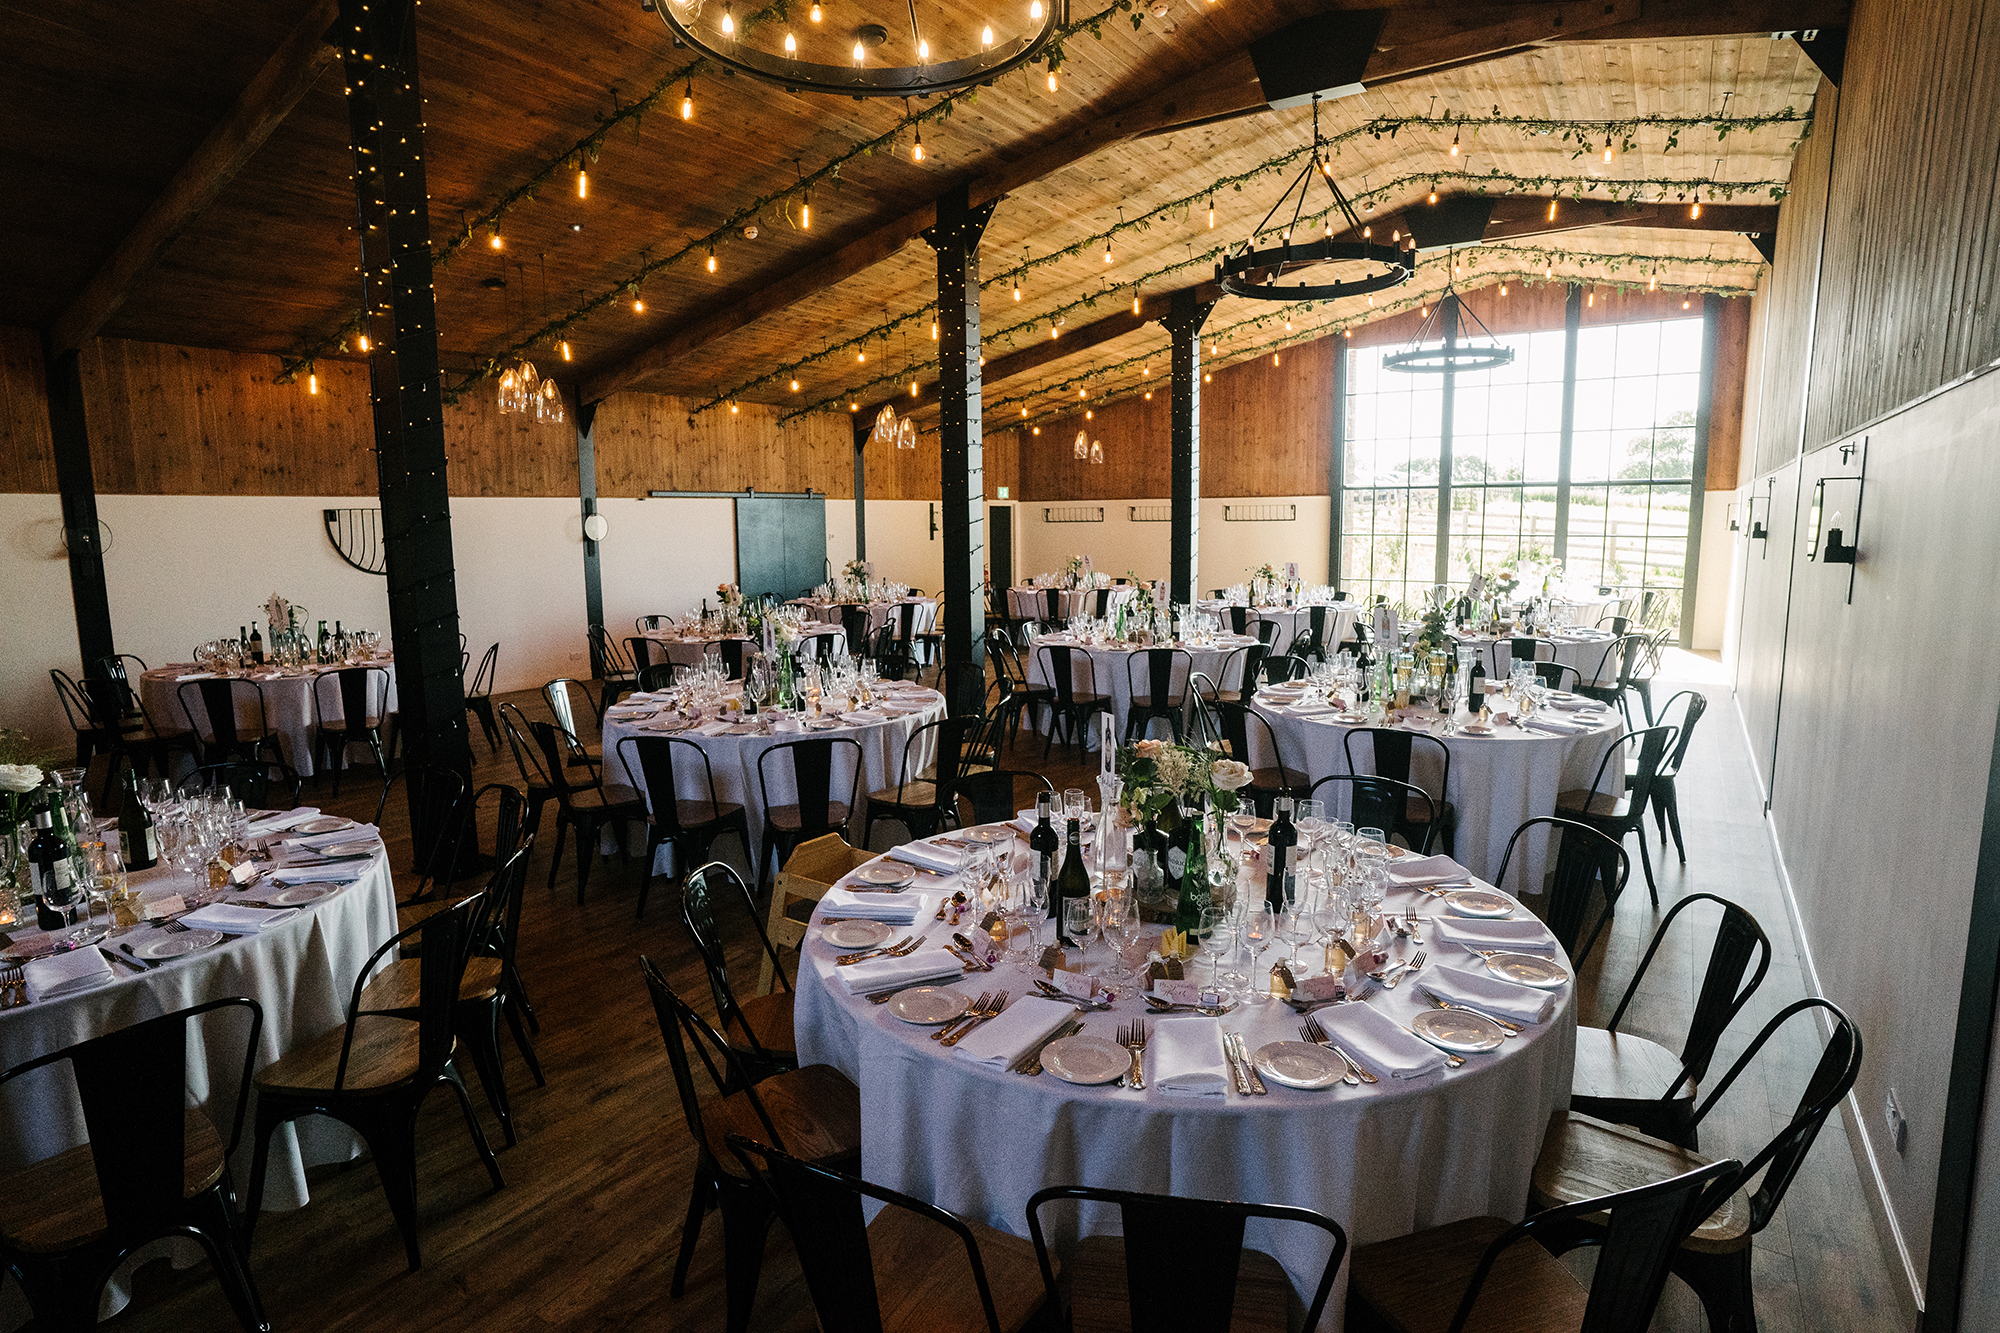 The Stable barn at Upton Barn dressed for a Wedding Breakfast